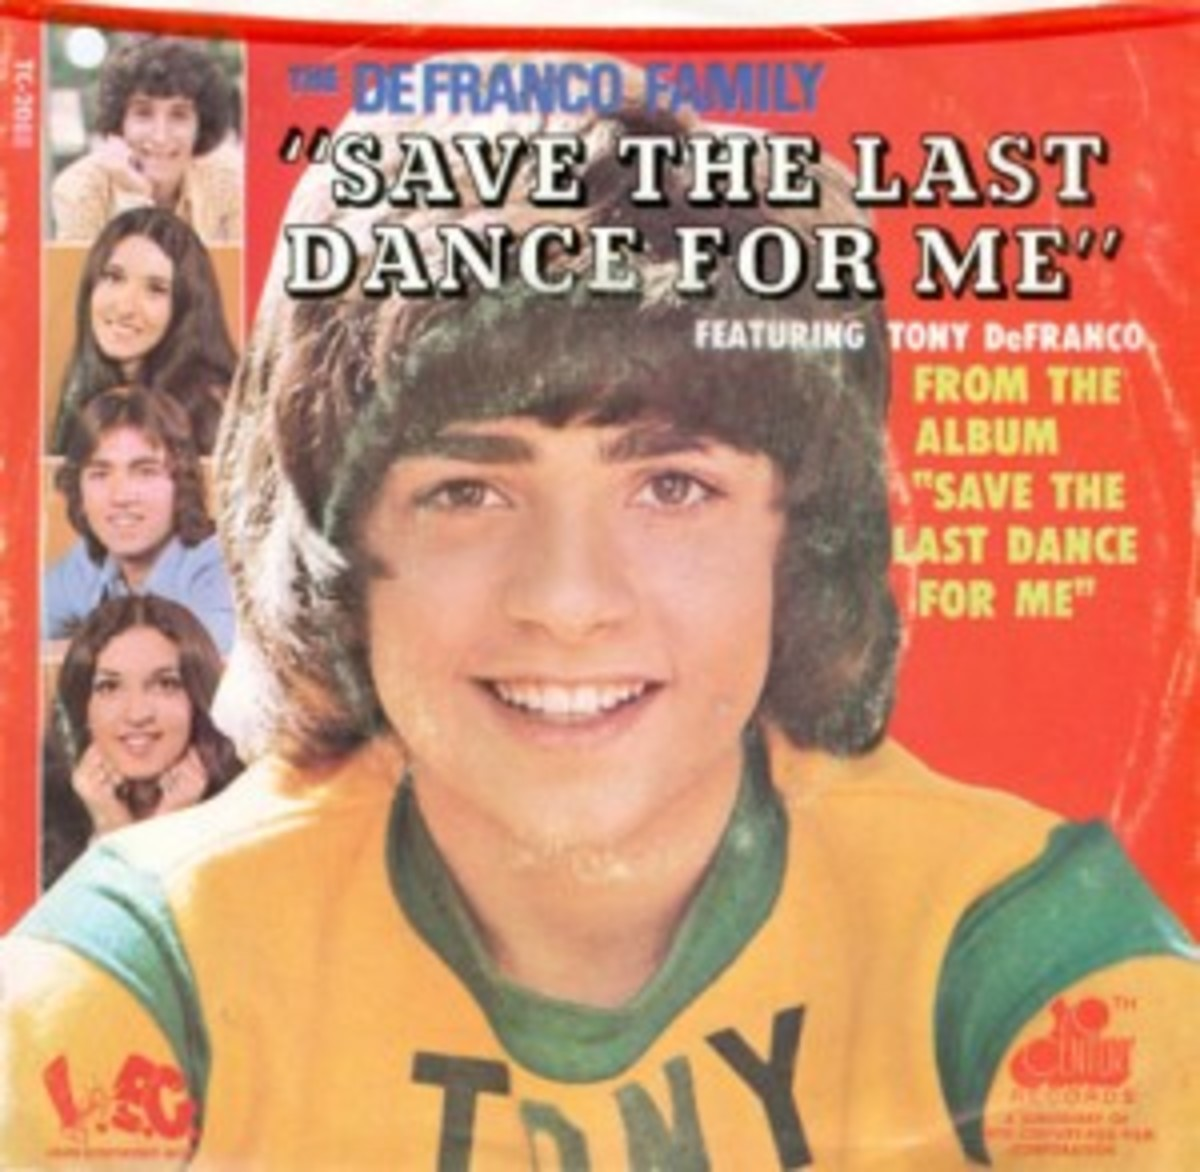 De Franco Family Save The Last Dance For Me picture sleeve